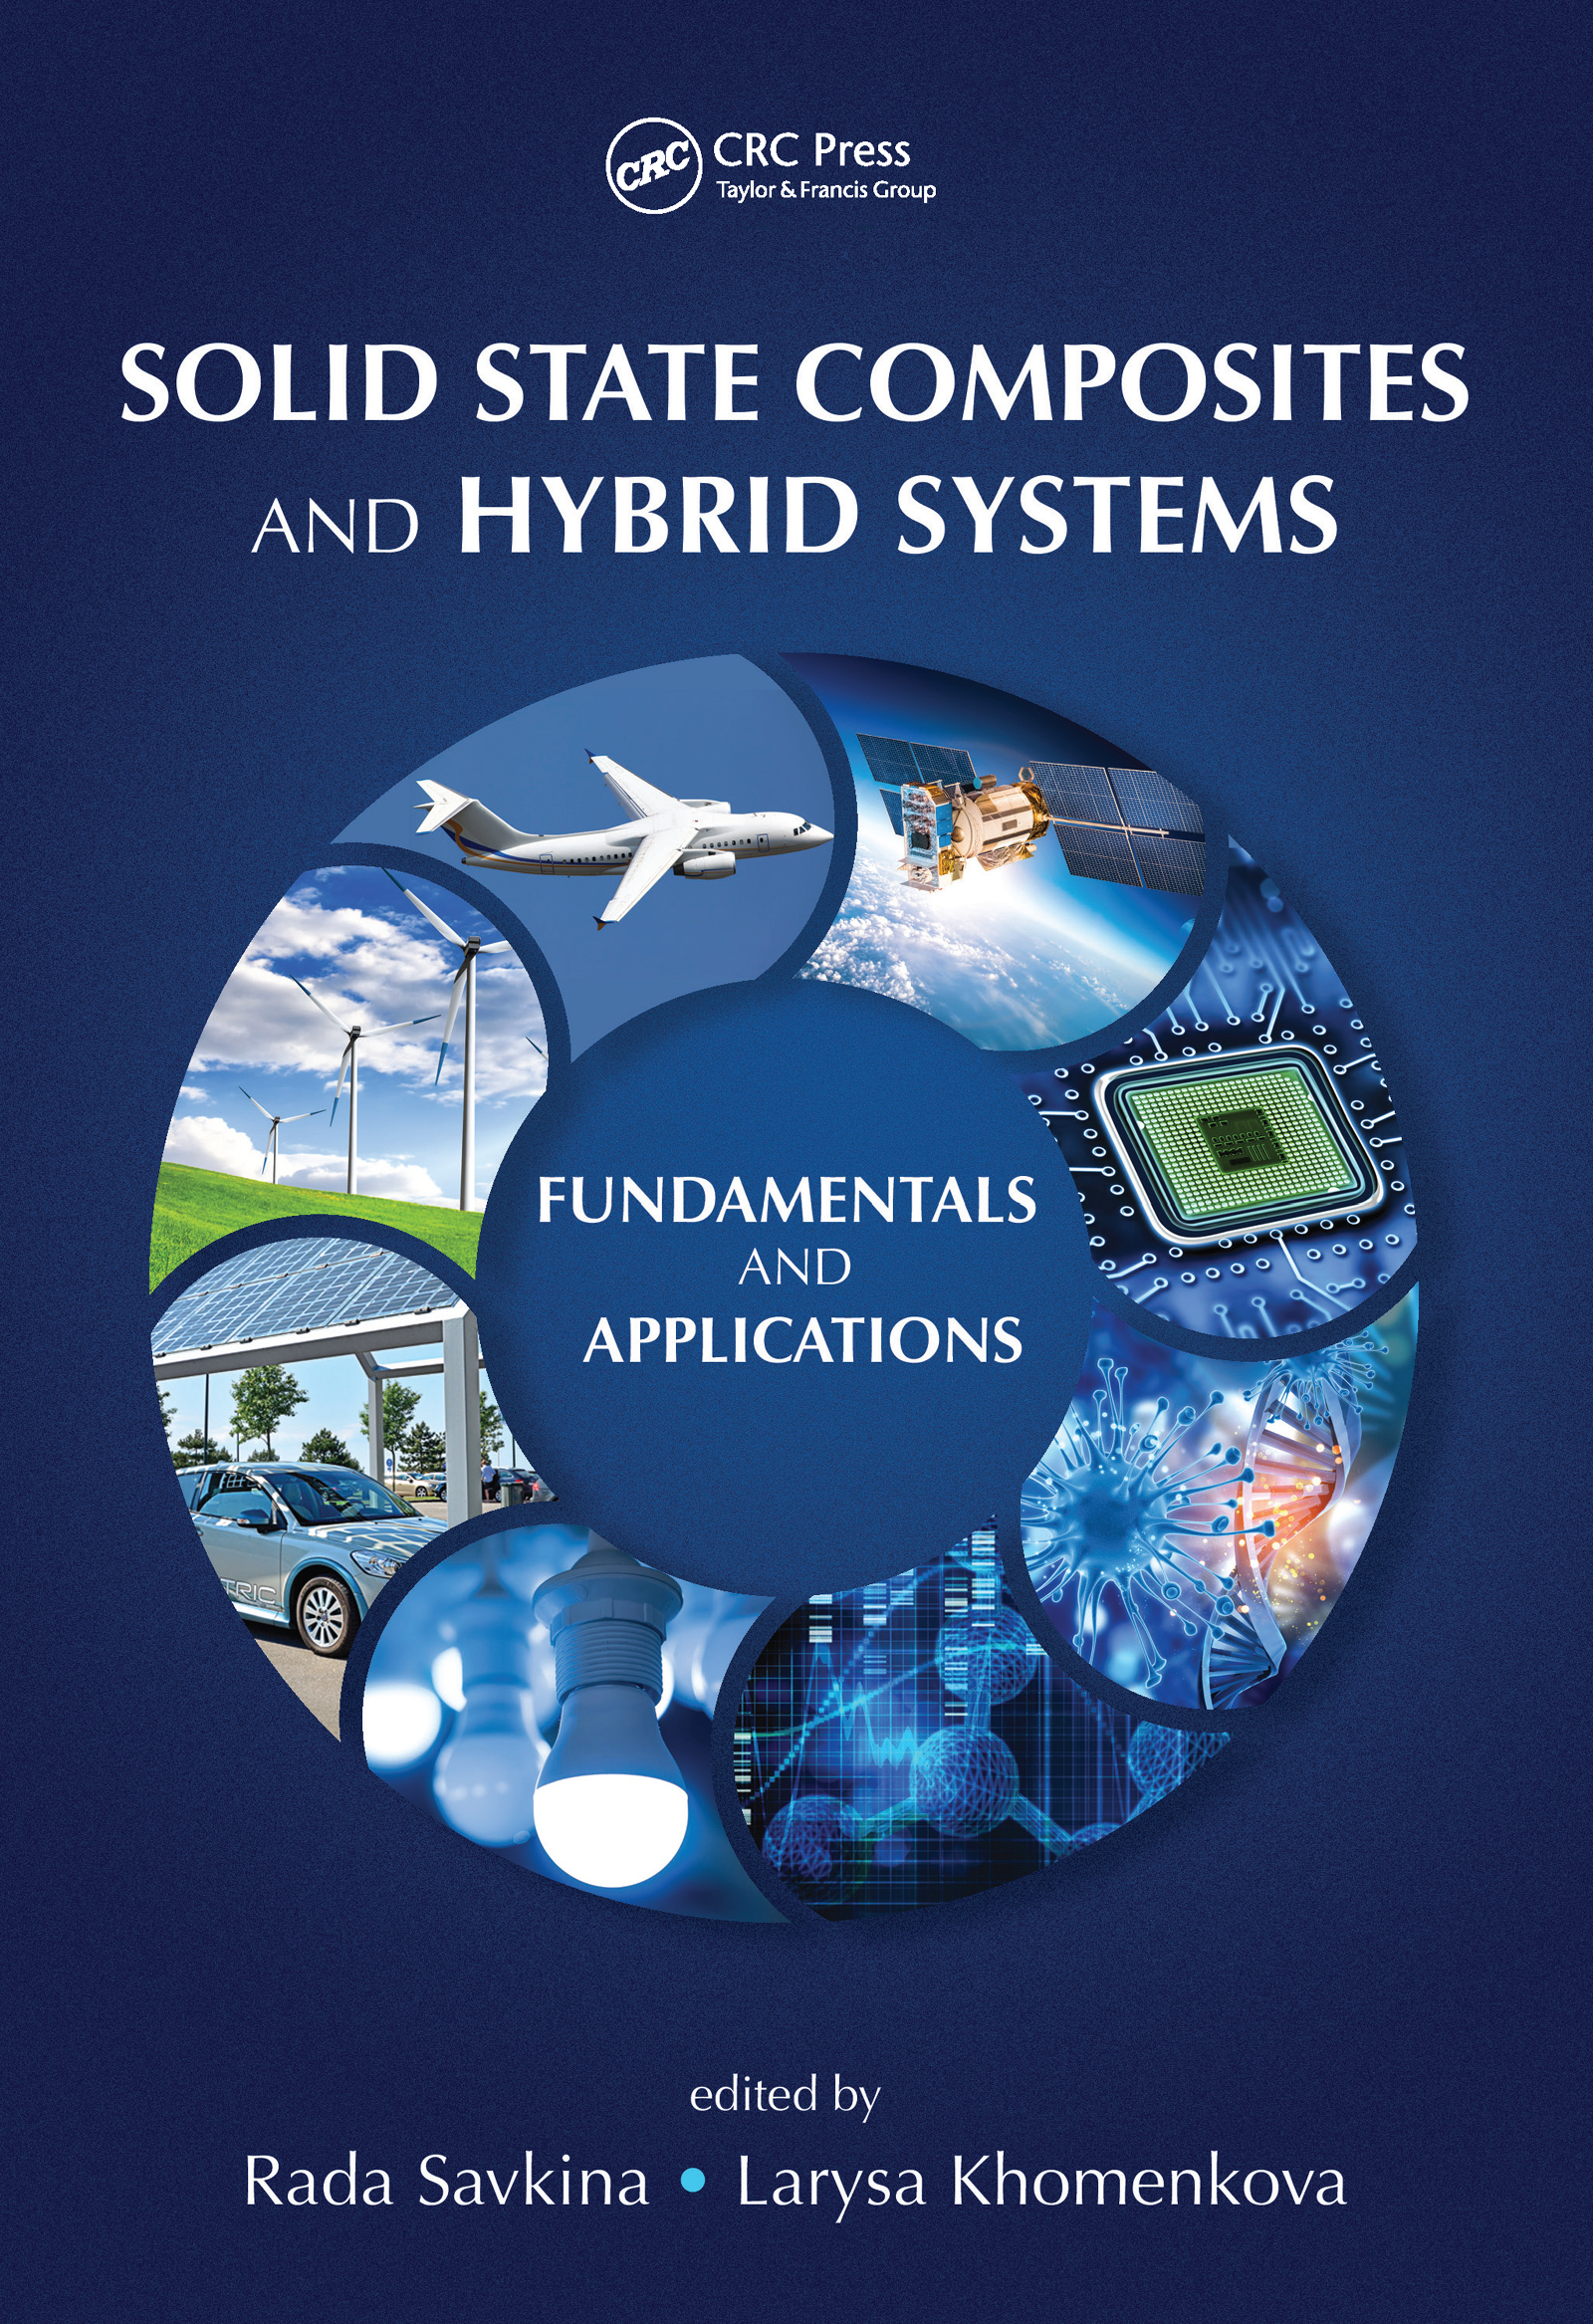 Solid State Composites and Hybrid Systems